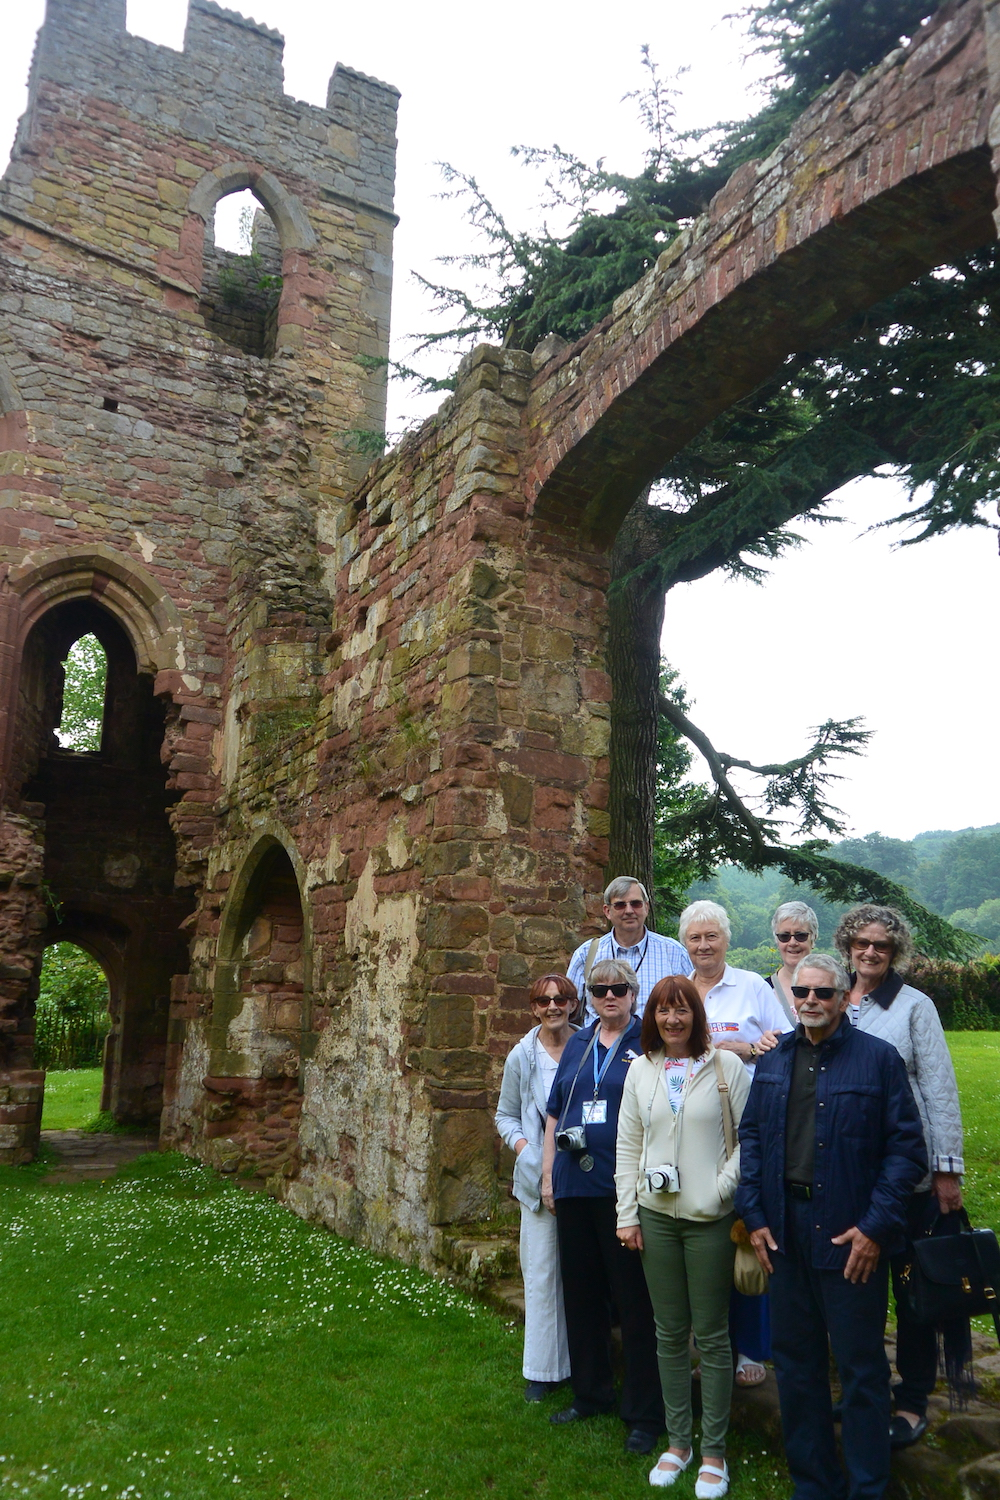 North Mercia branch outing in June 2018 to Stokesay & Acton Burnell